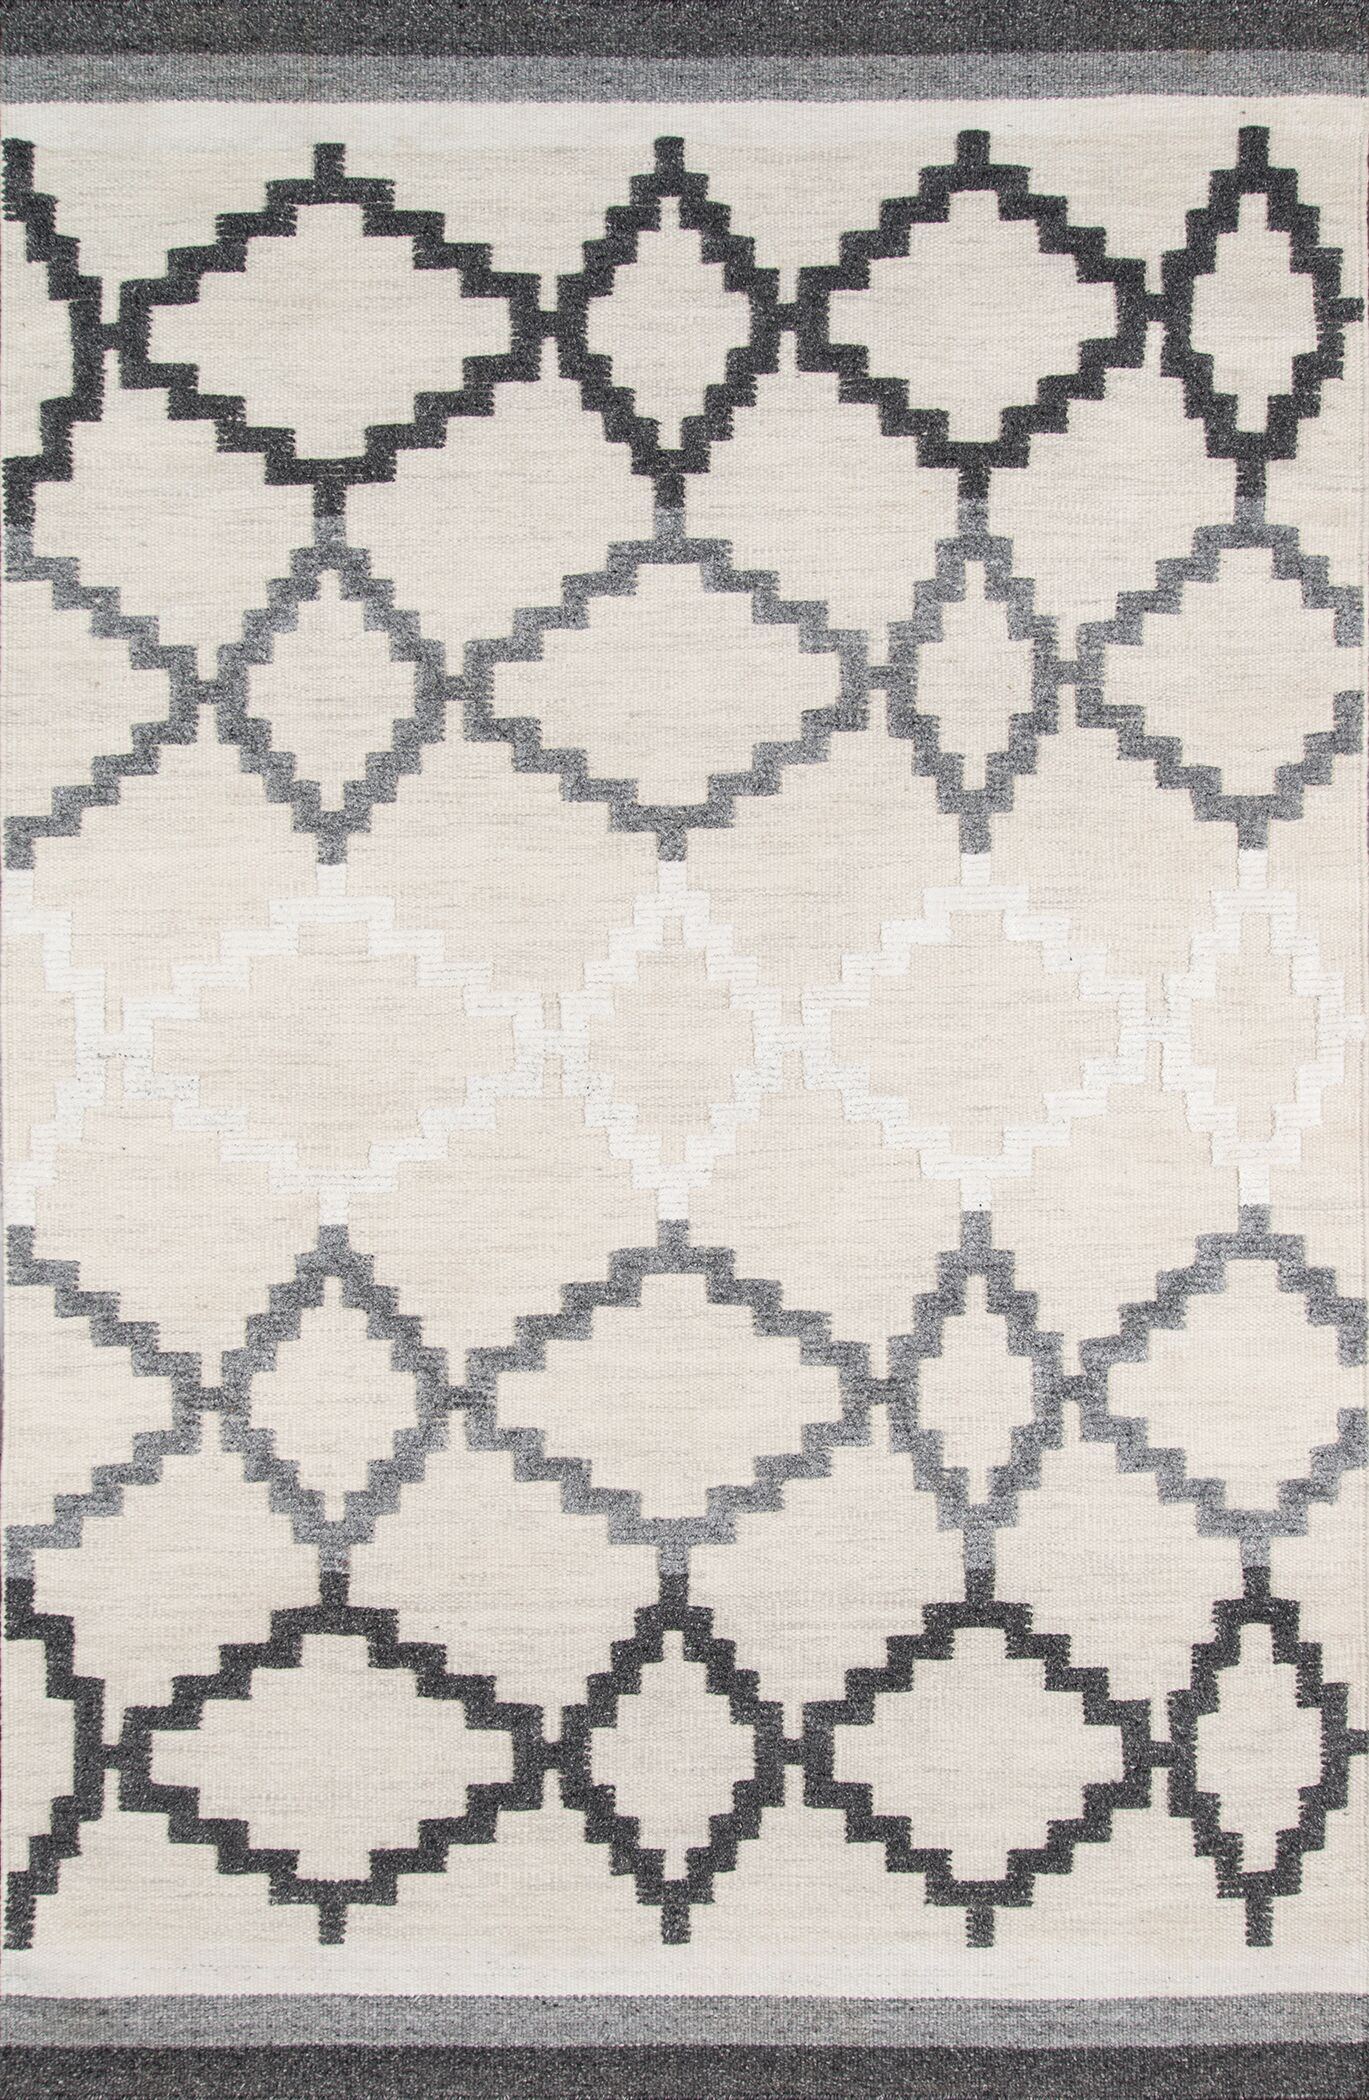 Middleborough Hand-Woven Gray Area Rug Rug Size: Rectangle 3'6